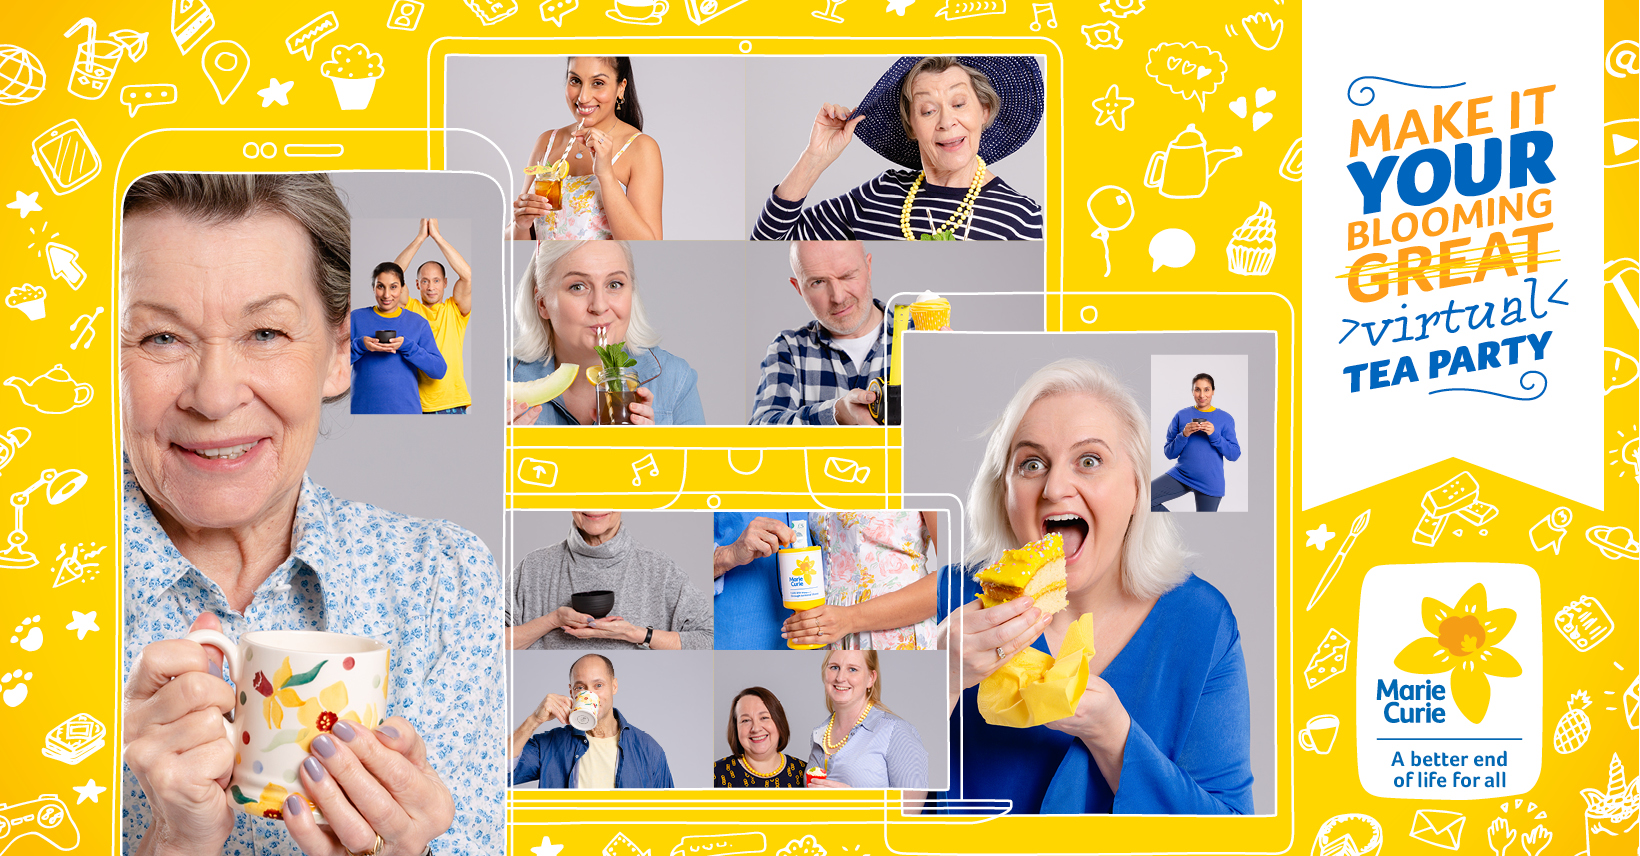 Marie Curie's famous fundraising campaign goes virtual